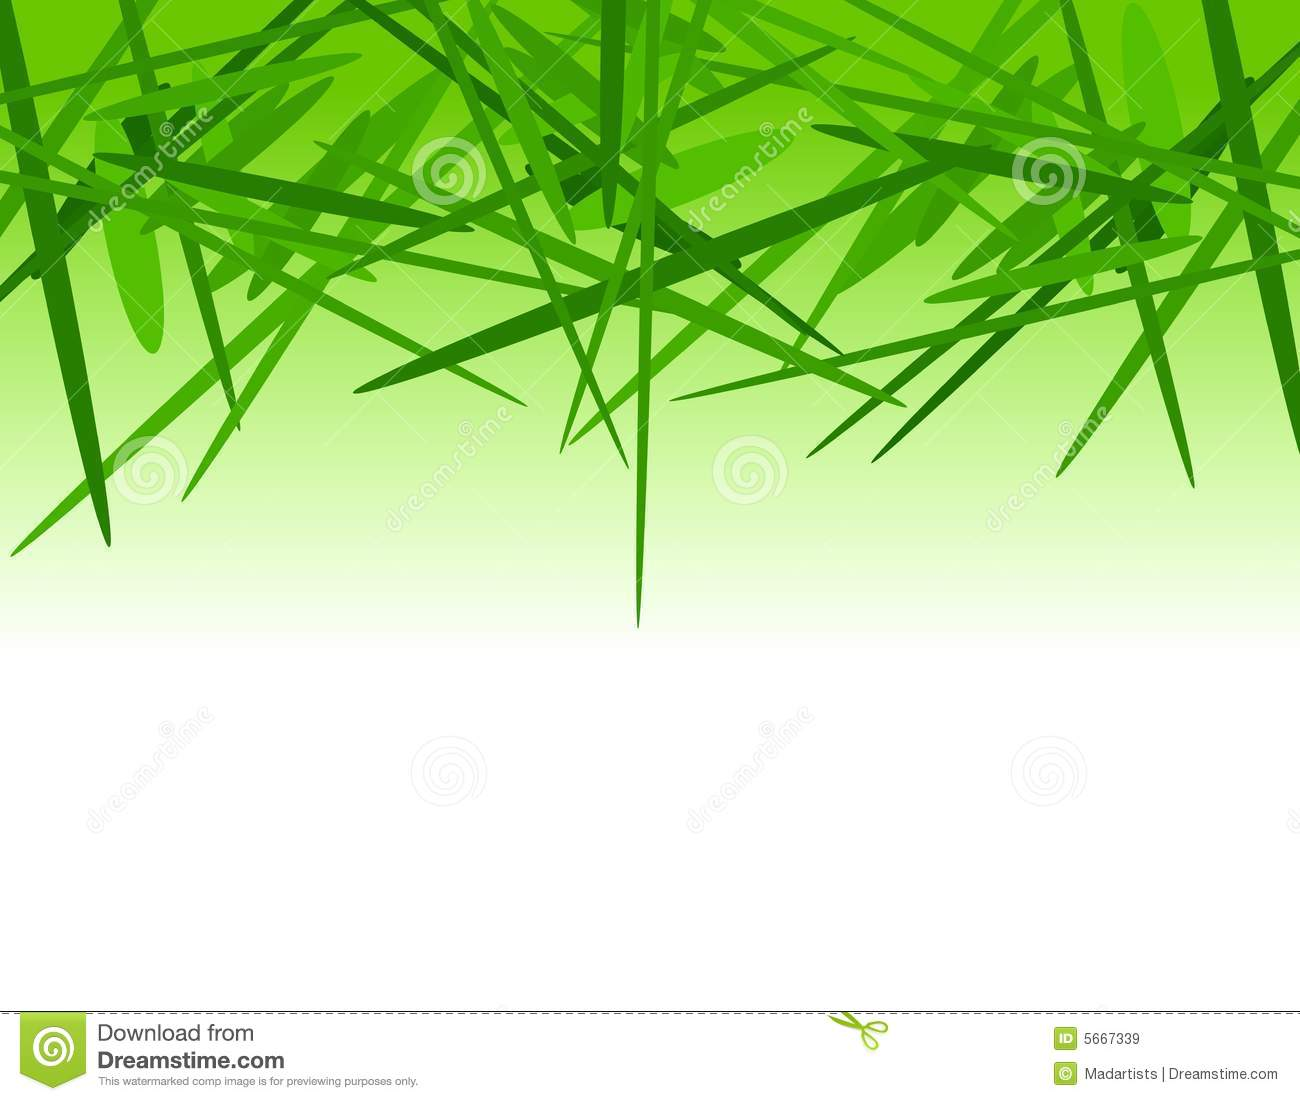 Green Grass Clippings Border Royalty Free Stock Images.